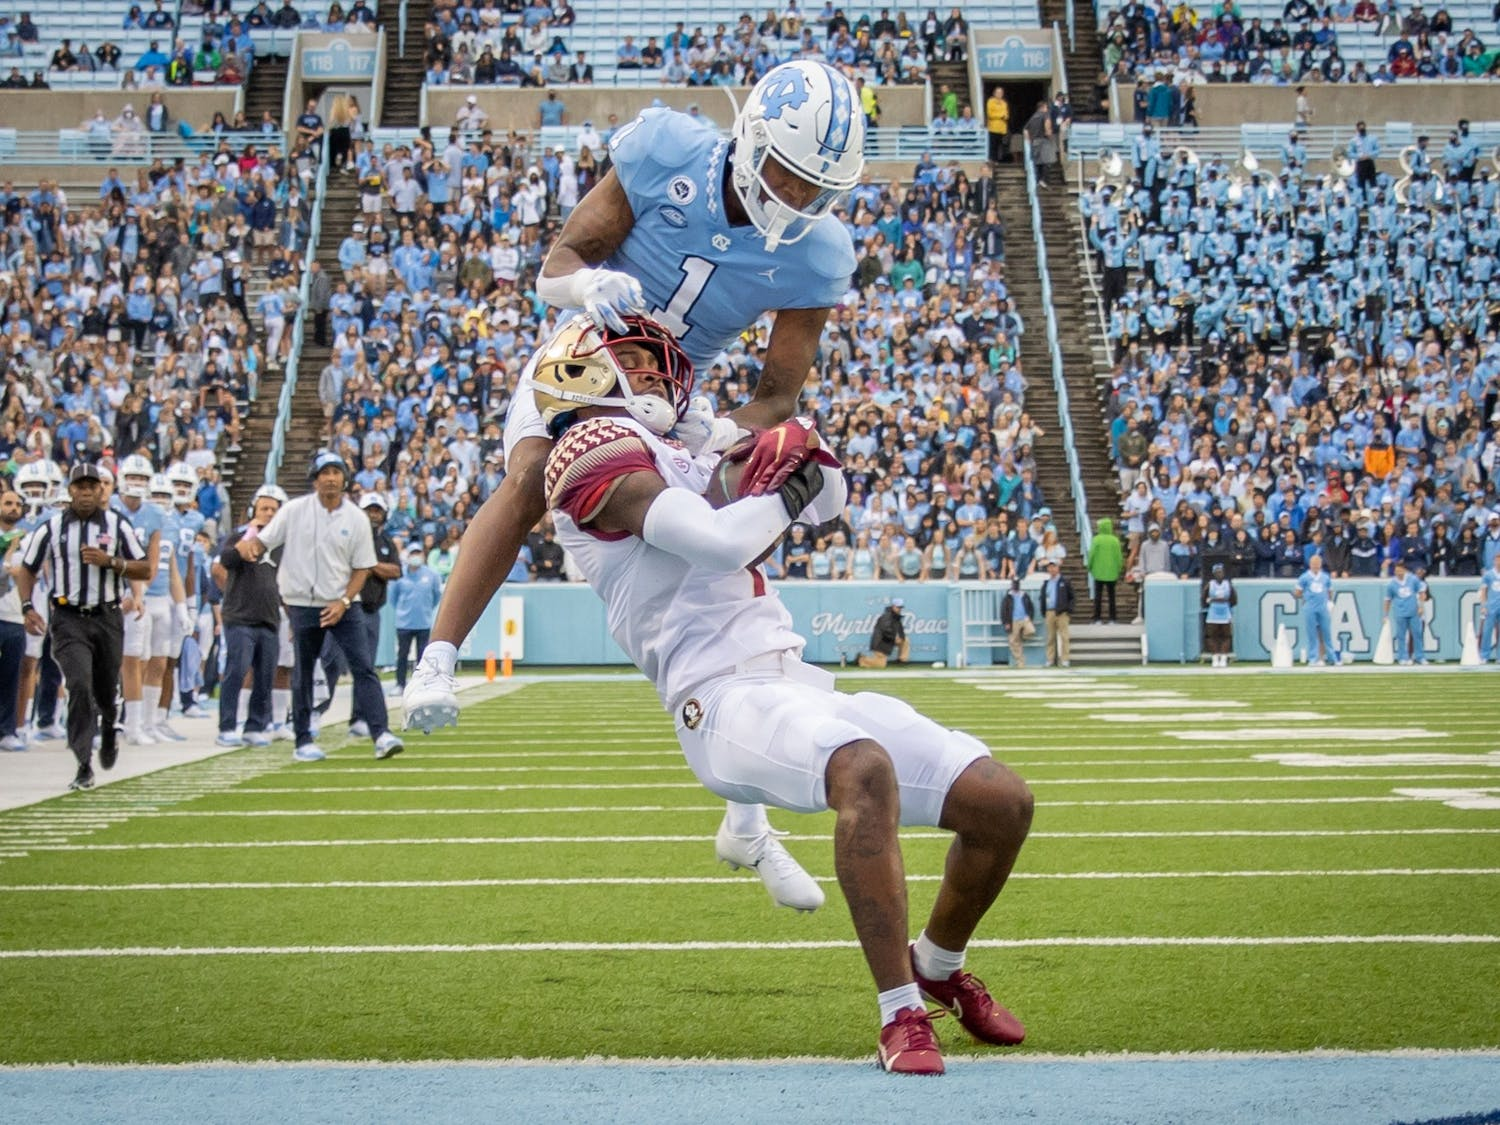 FSU sophomore defensive back Jarrian Jones (7) intercepts a long pass intended for UNC sophomore wide receiver Khafre Brown (1) during the Tar Heels' home football matchup in Kenan Memorial Stadium on Oct. 9, 2021, against the Florida State Seminoles. FSU won 35-25.